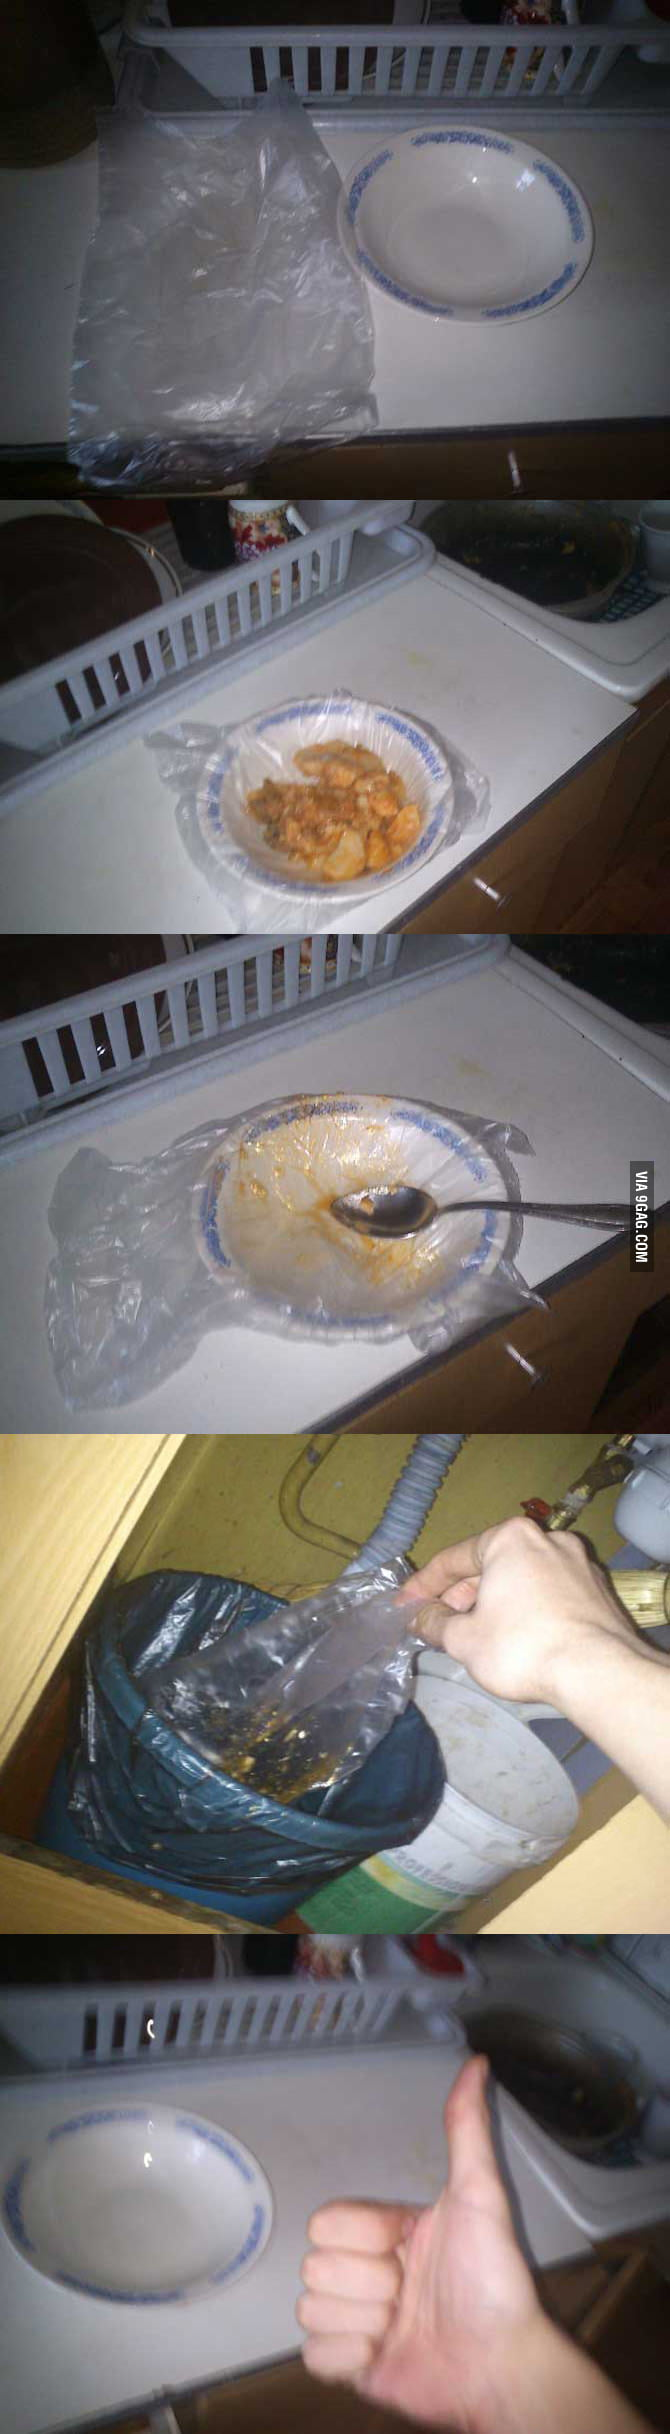 How not to ever wash the dishes